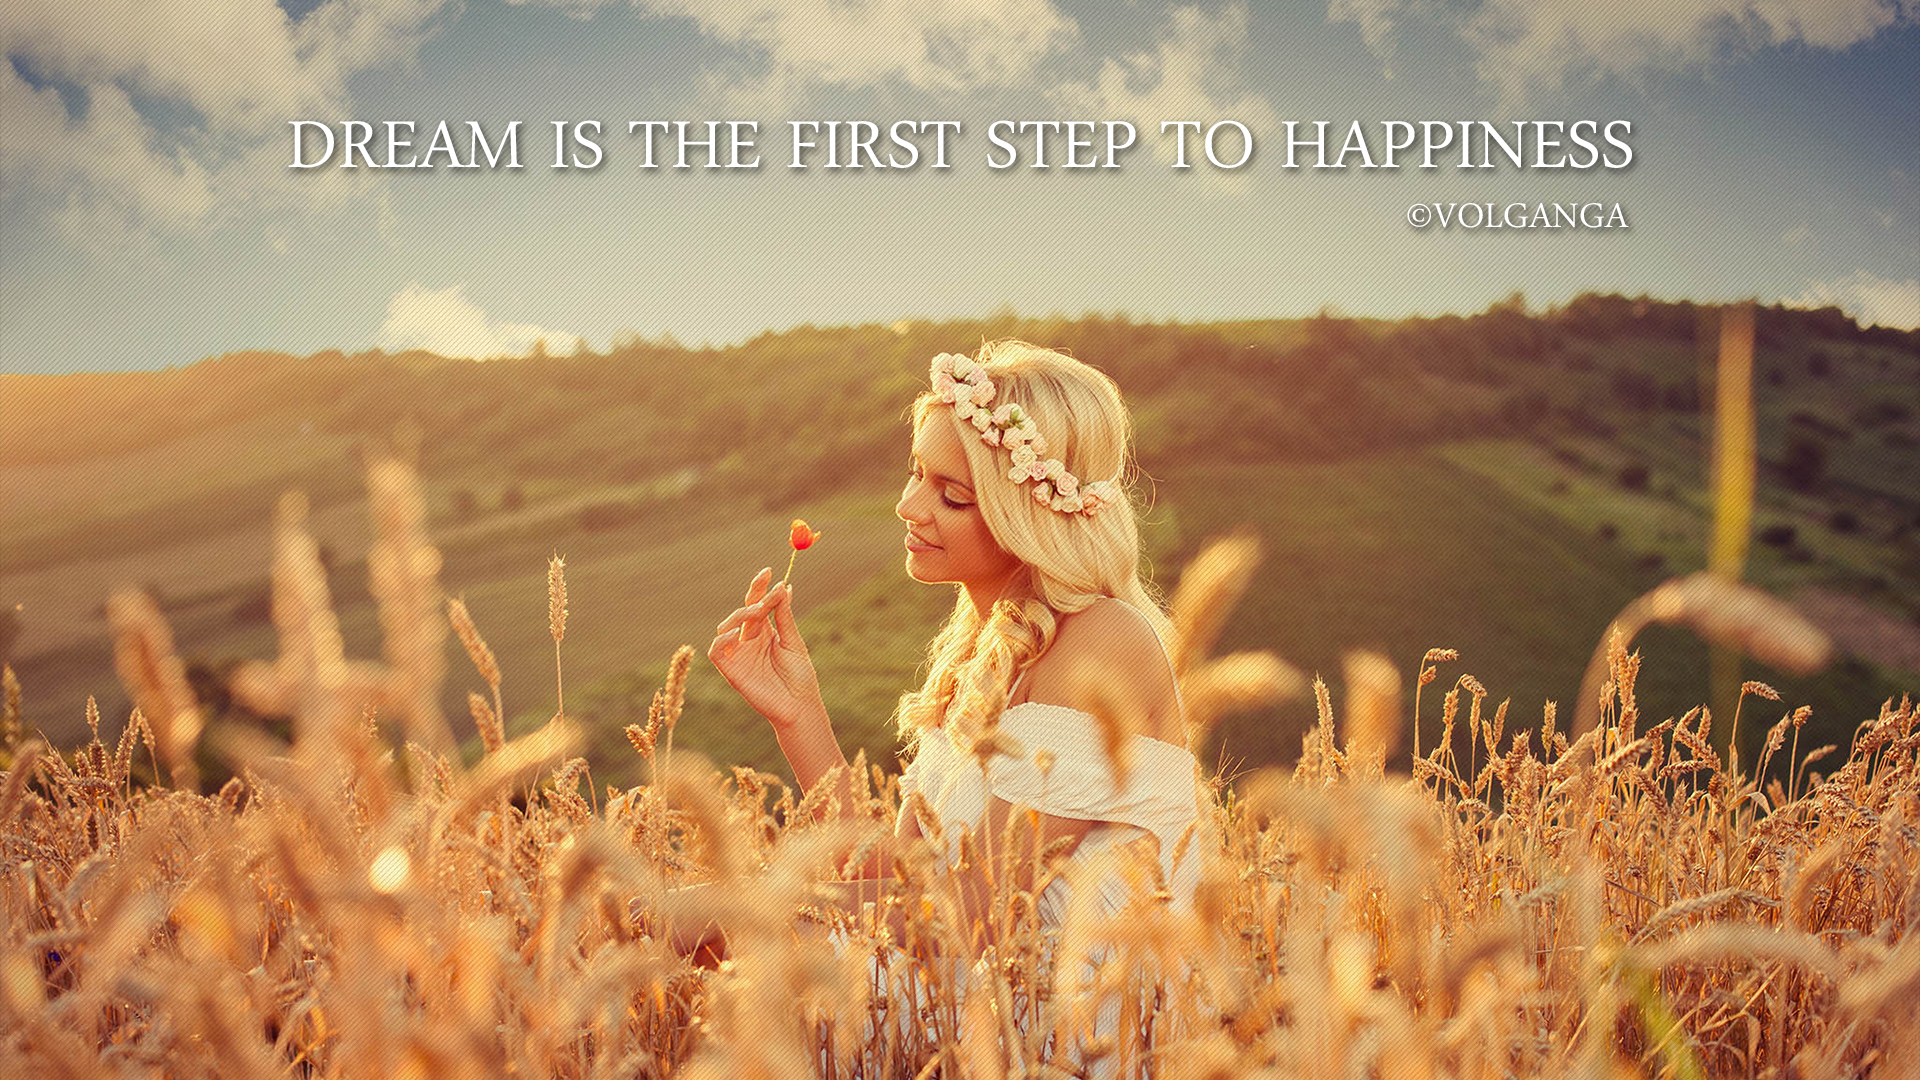 Dreams Quotes In Hd Wallpapers Dream Is The First Step To Happiness CVolGanga